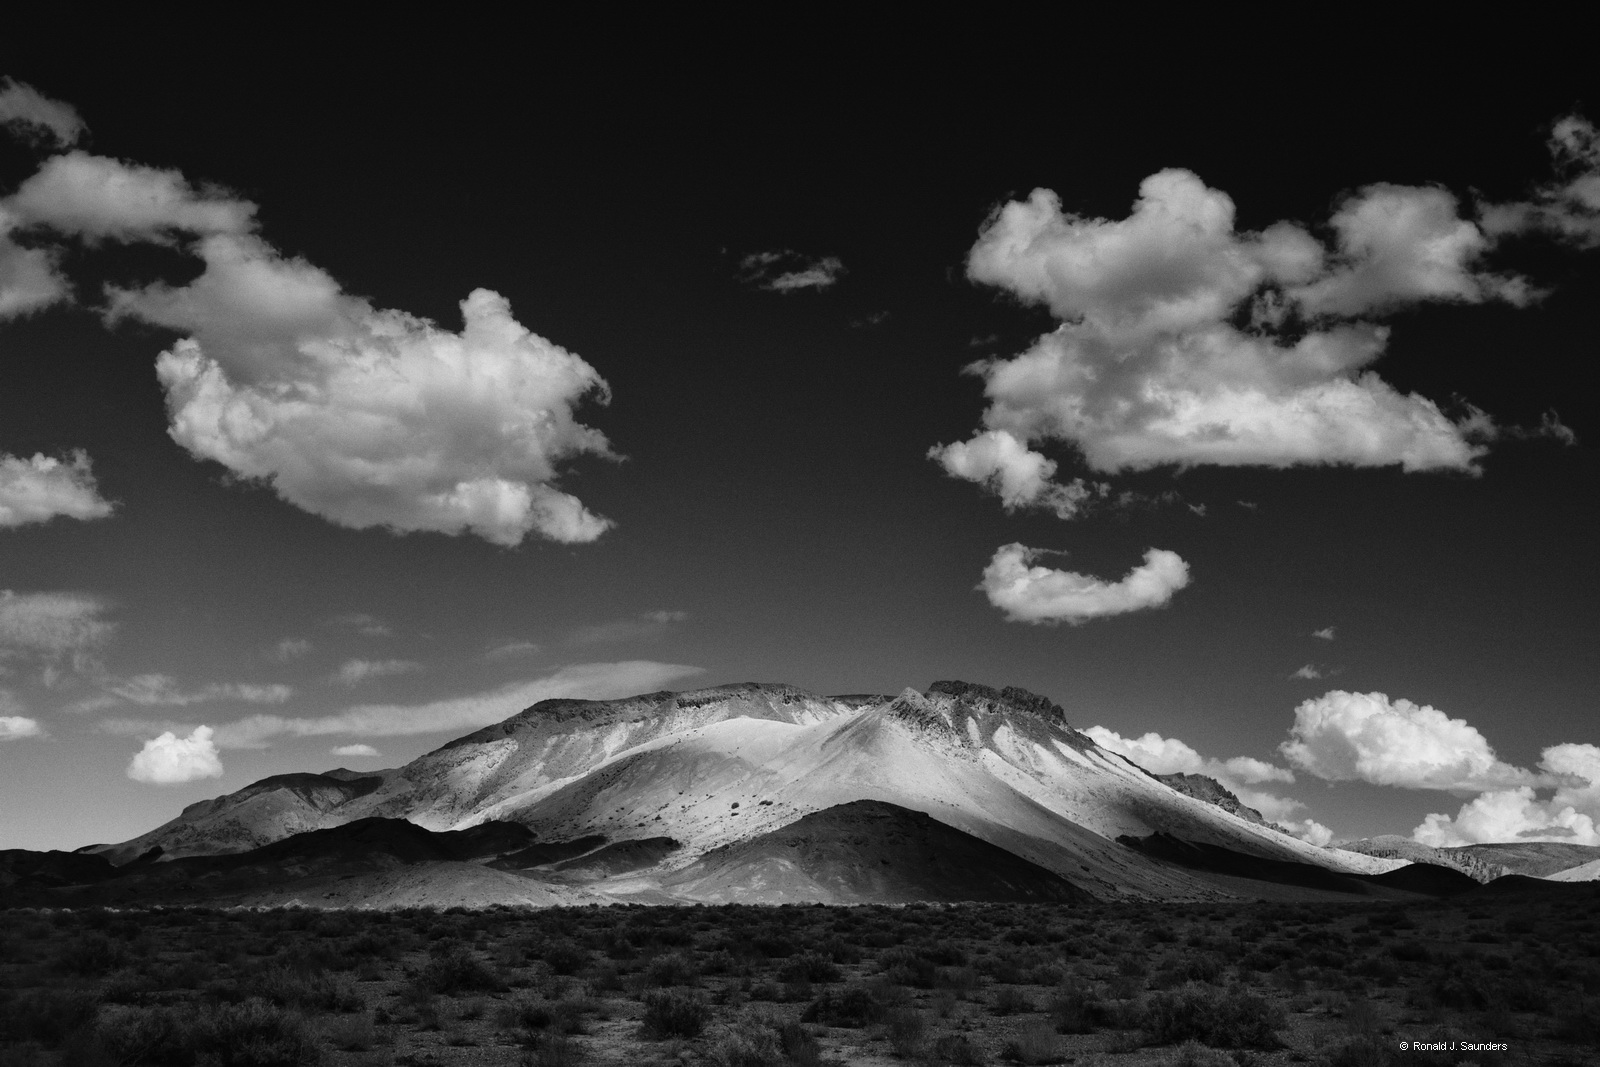 tonapah, spring gap, nevada, clouds, black and white, ronald, saunders, ron,, photo